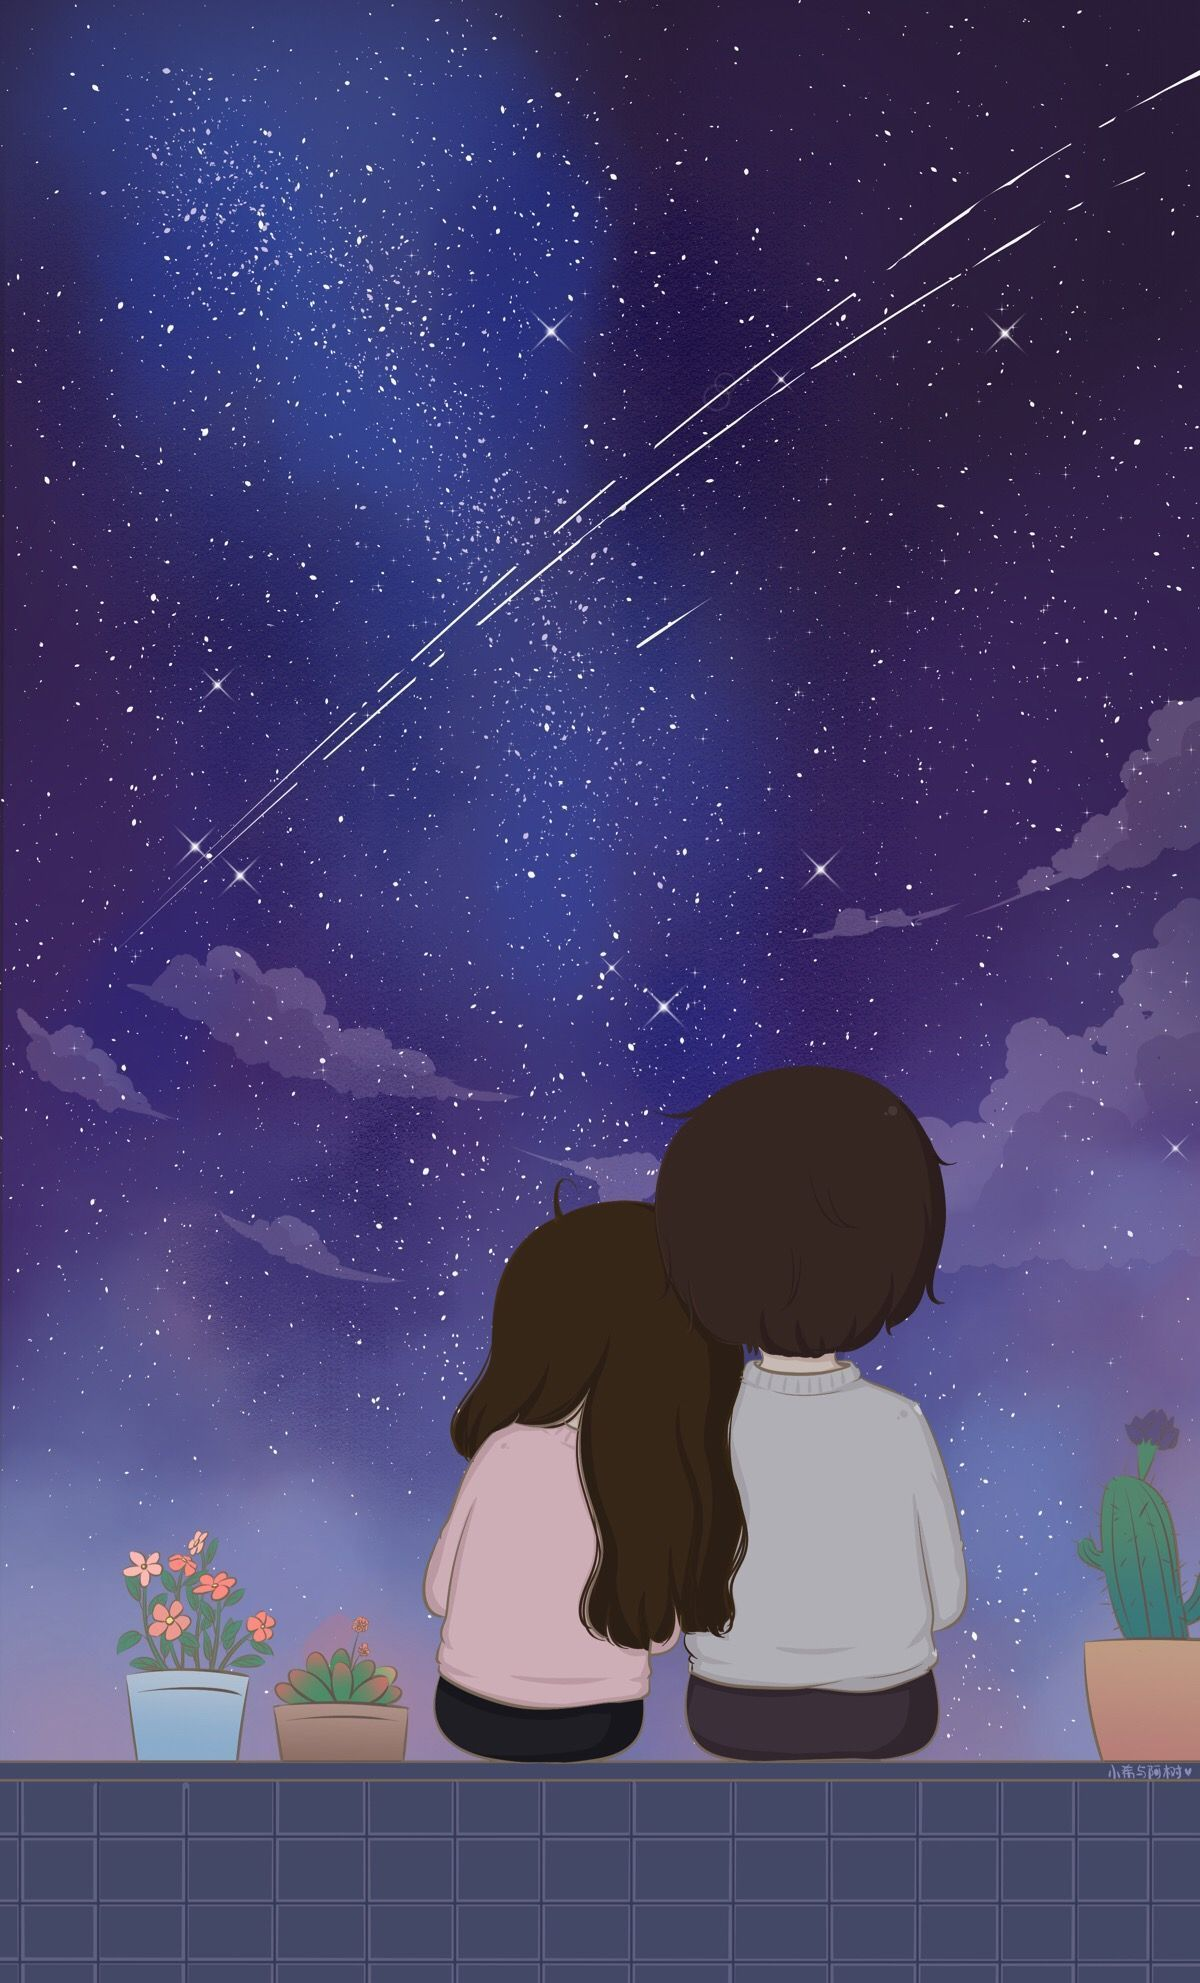 Don't forget to bookmark this page for future. Cute HD Anime Couple DP Wallpapers - Wallpaper Cave